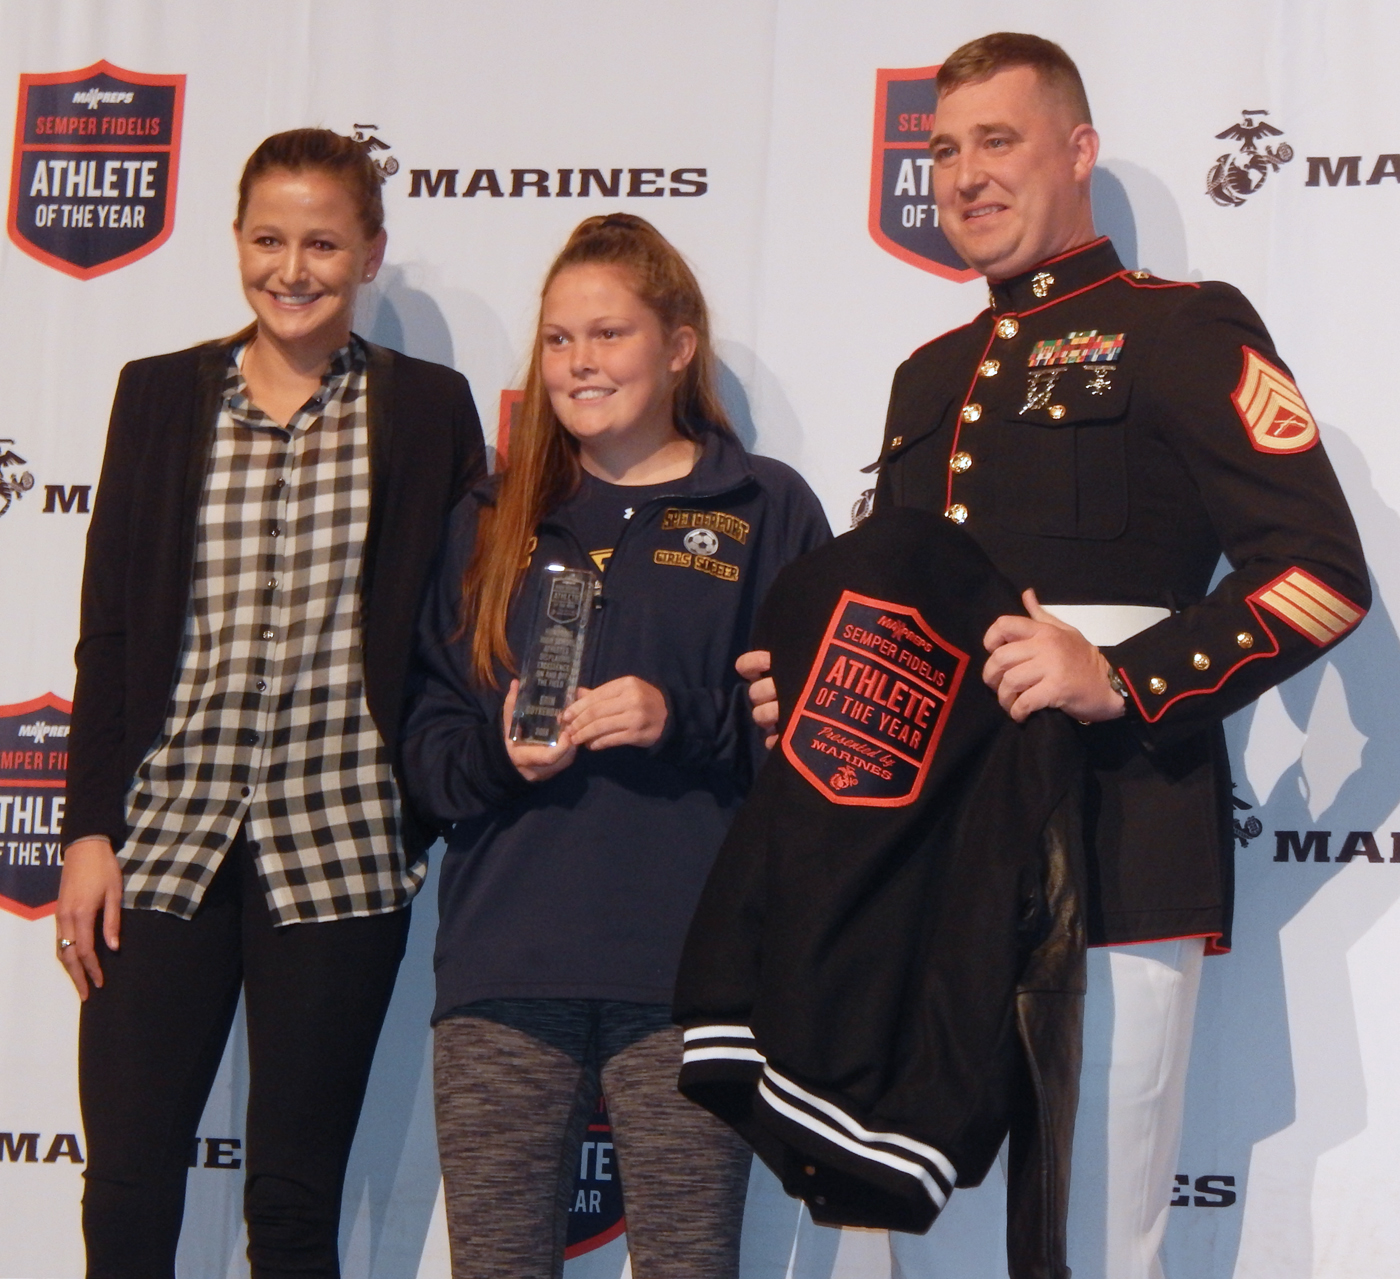 Carly Reed, Professional Lacrosse player for the New England Command, Erin Coykendall and Staff Sergeant Fetzer of the US Marines. Photo by Bill Stultz